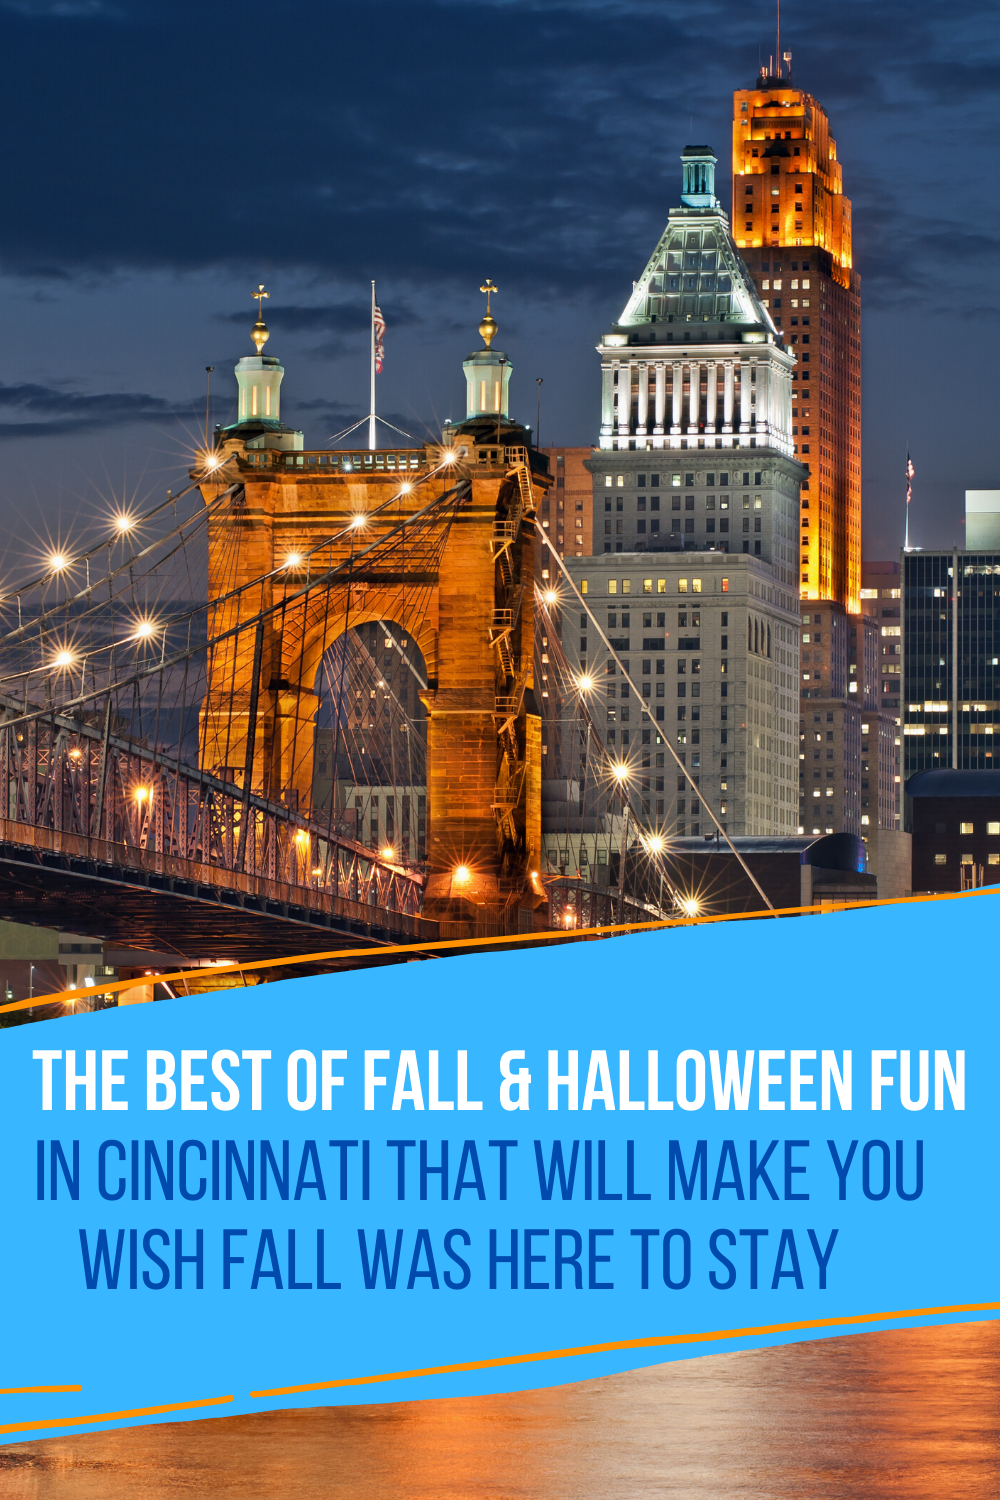 Halloween Camping In Ohio 2020 Fall Festivals and Halloween Things to do in Cincinnati in 2020